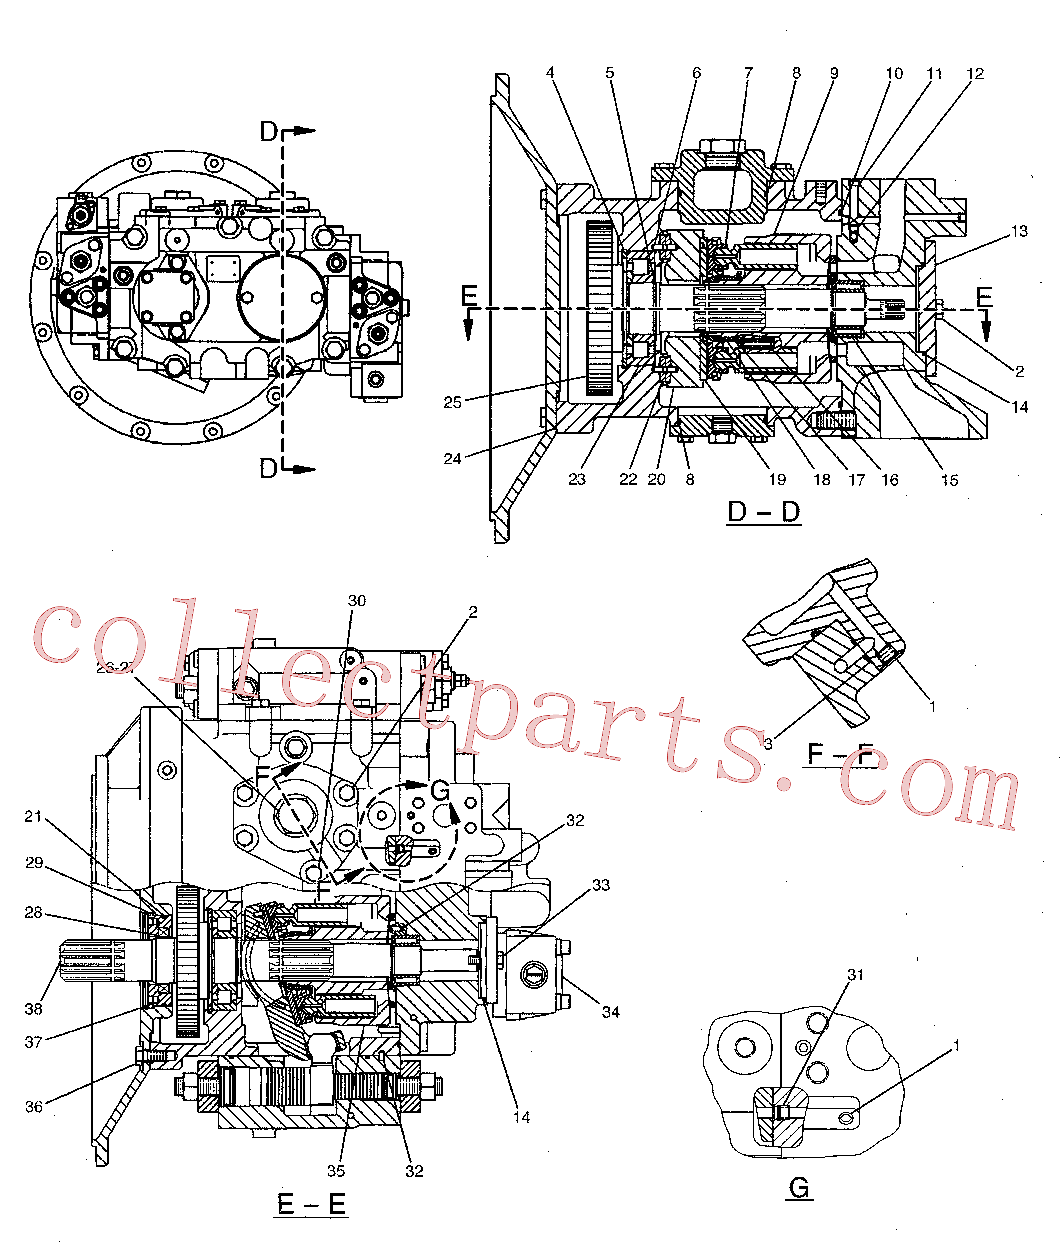 CAT 7Y-4215 for M325C MH Wheeled Excavator(WHEX) hydraulic system 173-3381 Assembly